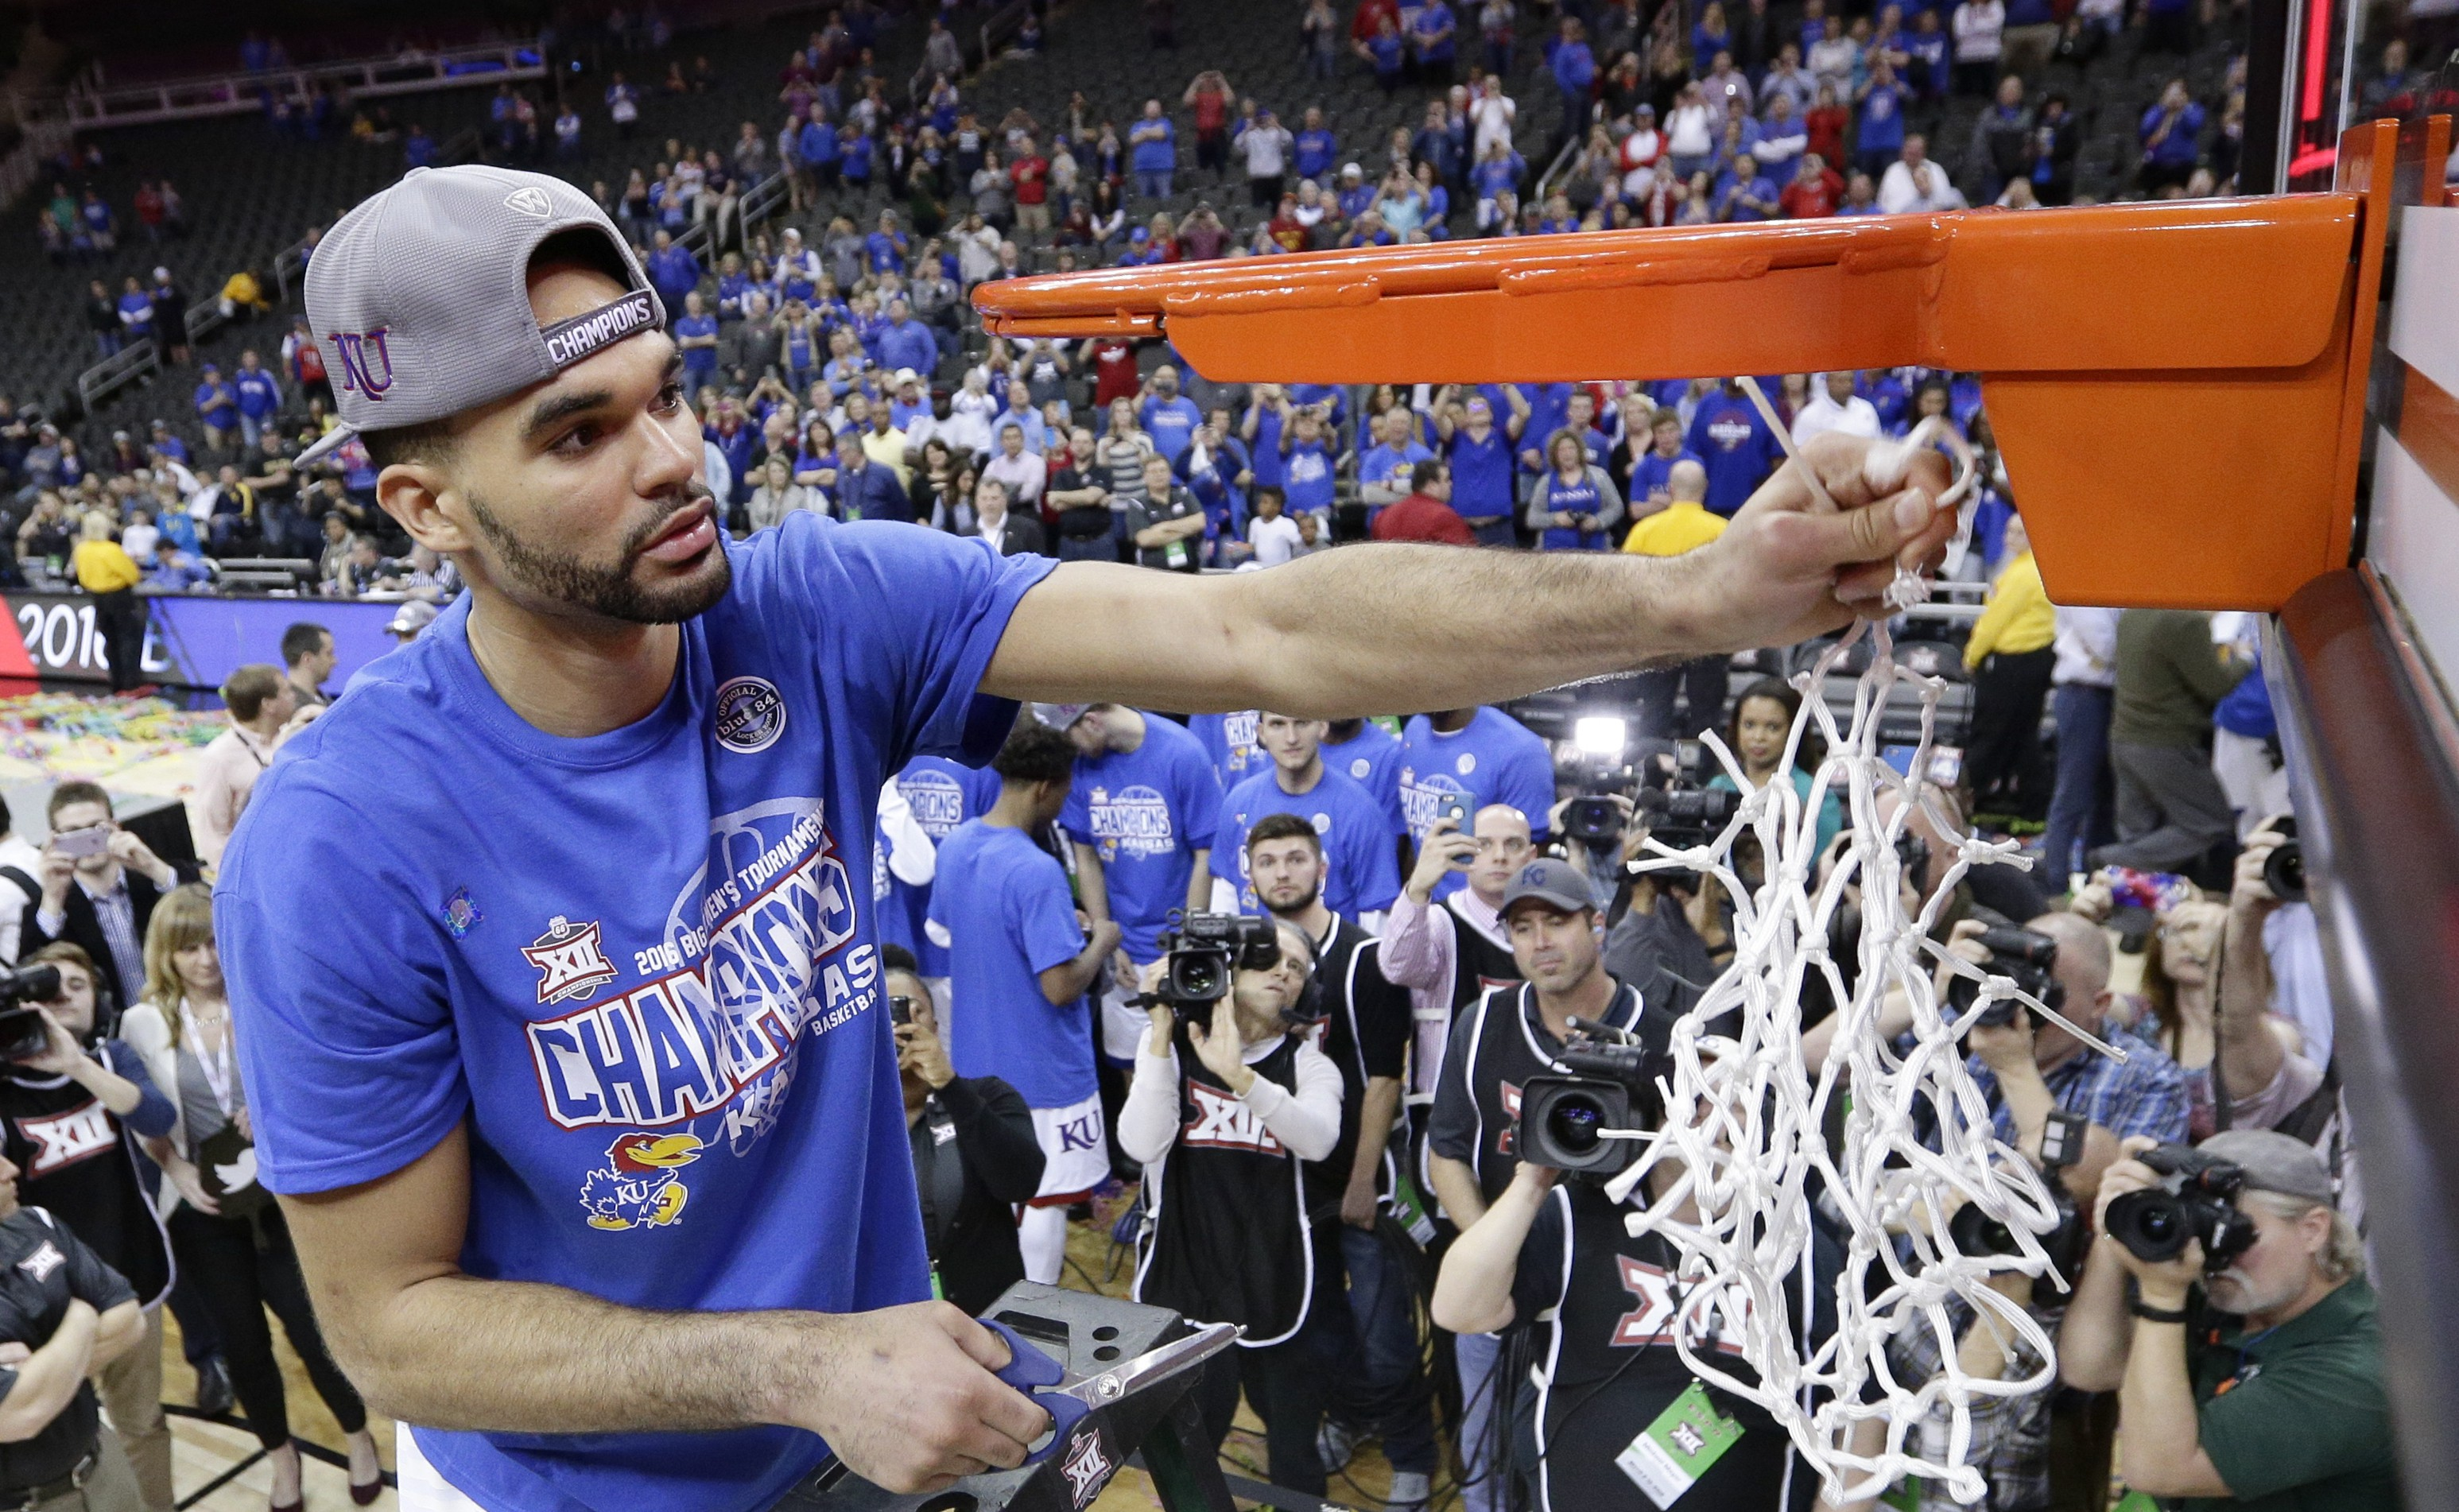 Kansas' Perry Ellis cuts a piece of the net (AP Photo/Charlie Riedel)